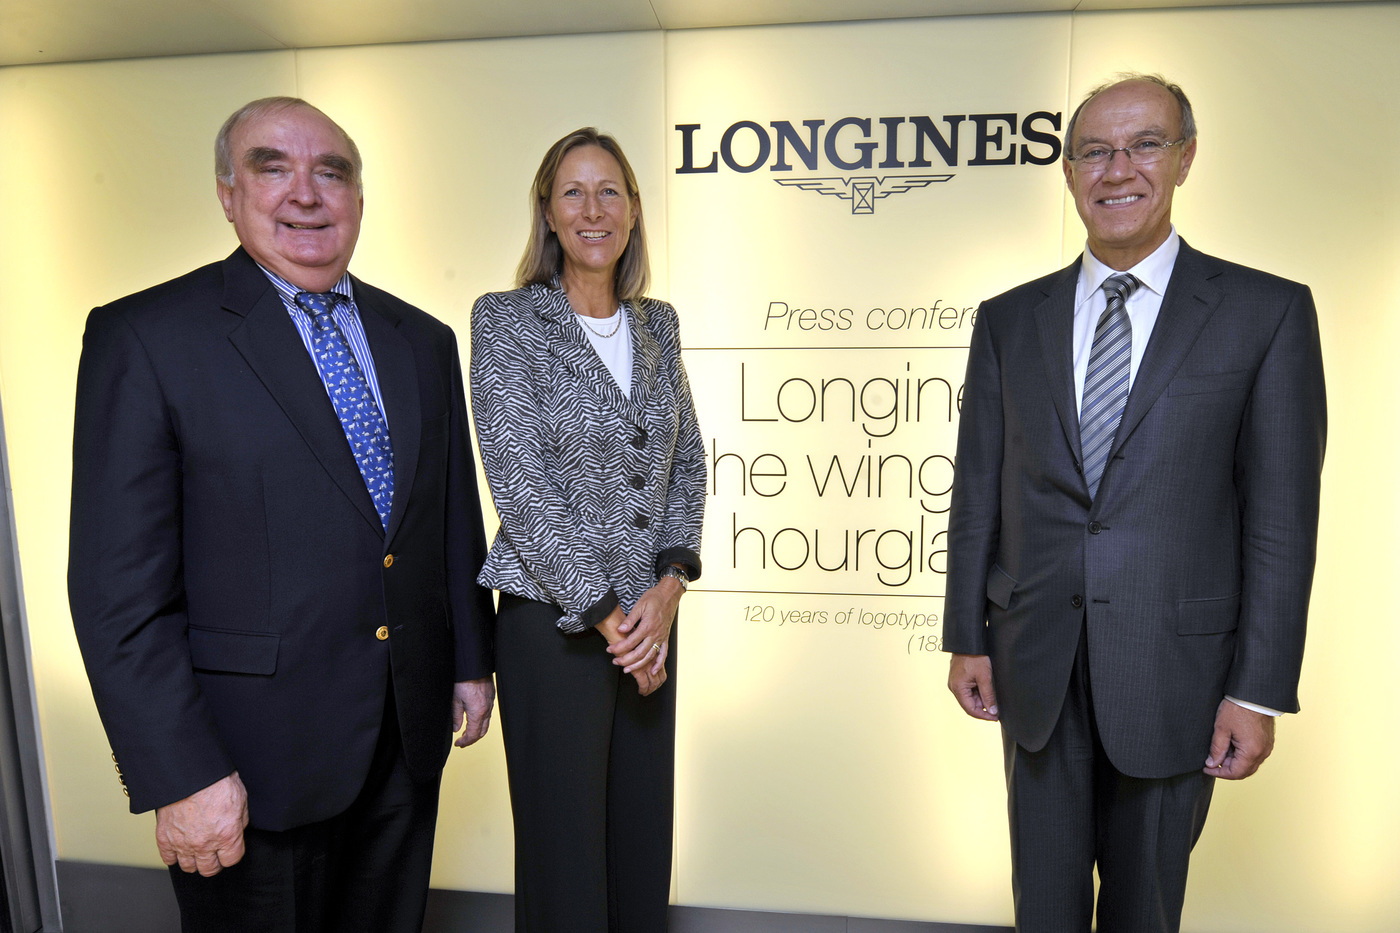 Longines Corporate Event: Longines has celebrated the 120th anniversary of the registration of a logo that is still in use today 14